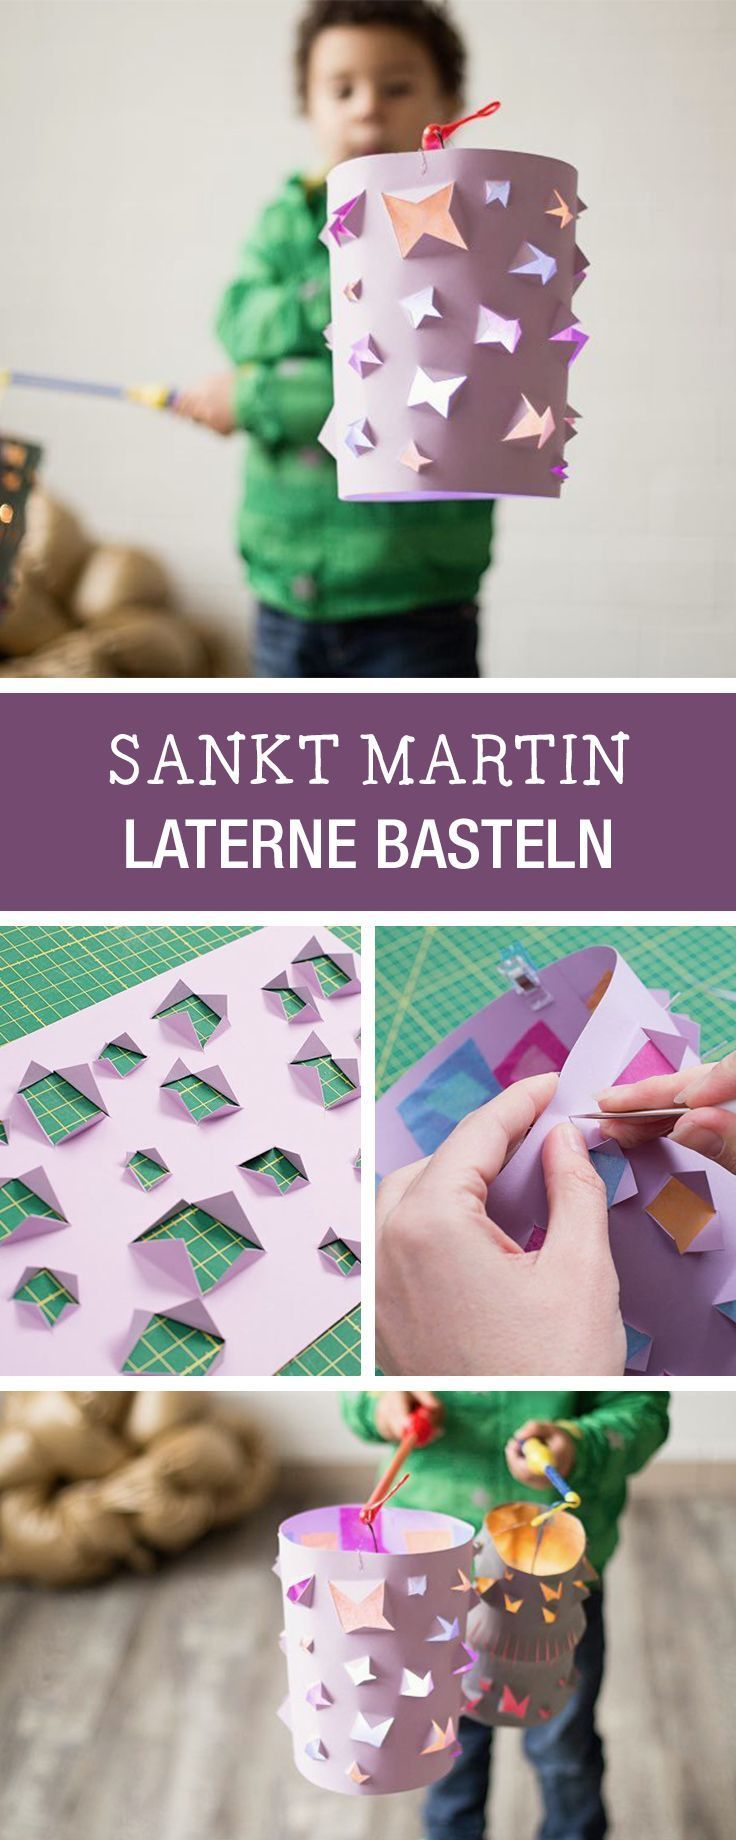 Basteln im Herbst mit Kindern: Laterne für Sankt Martin basteln / lantern diy for the fall season, crafting with kids via DaWanda.com #spinnennetzbasteln